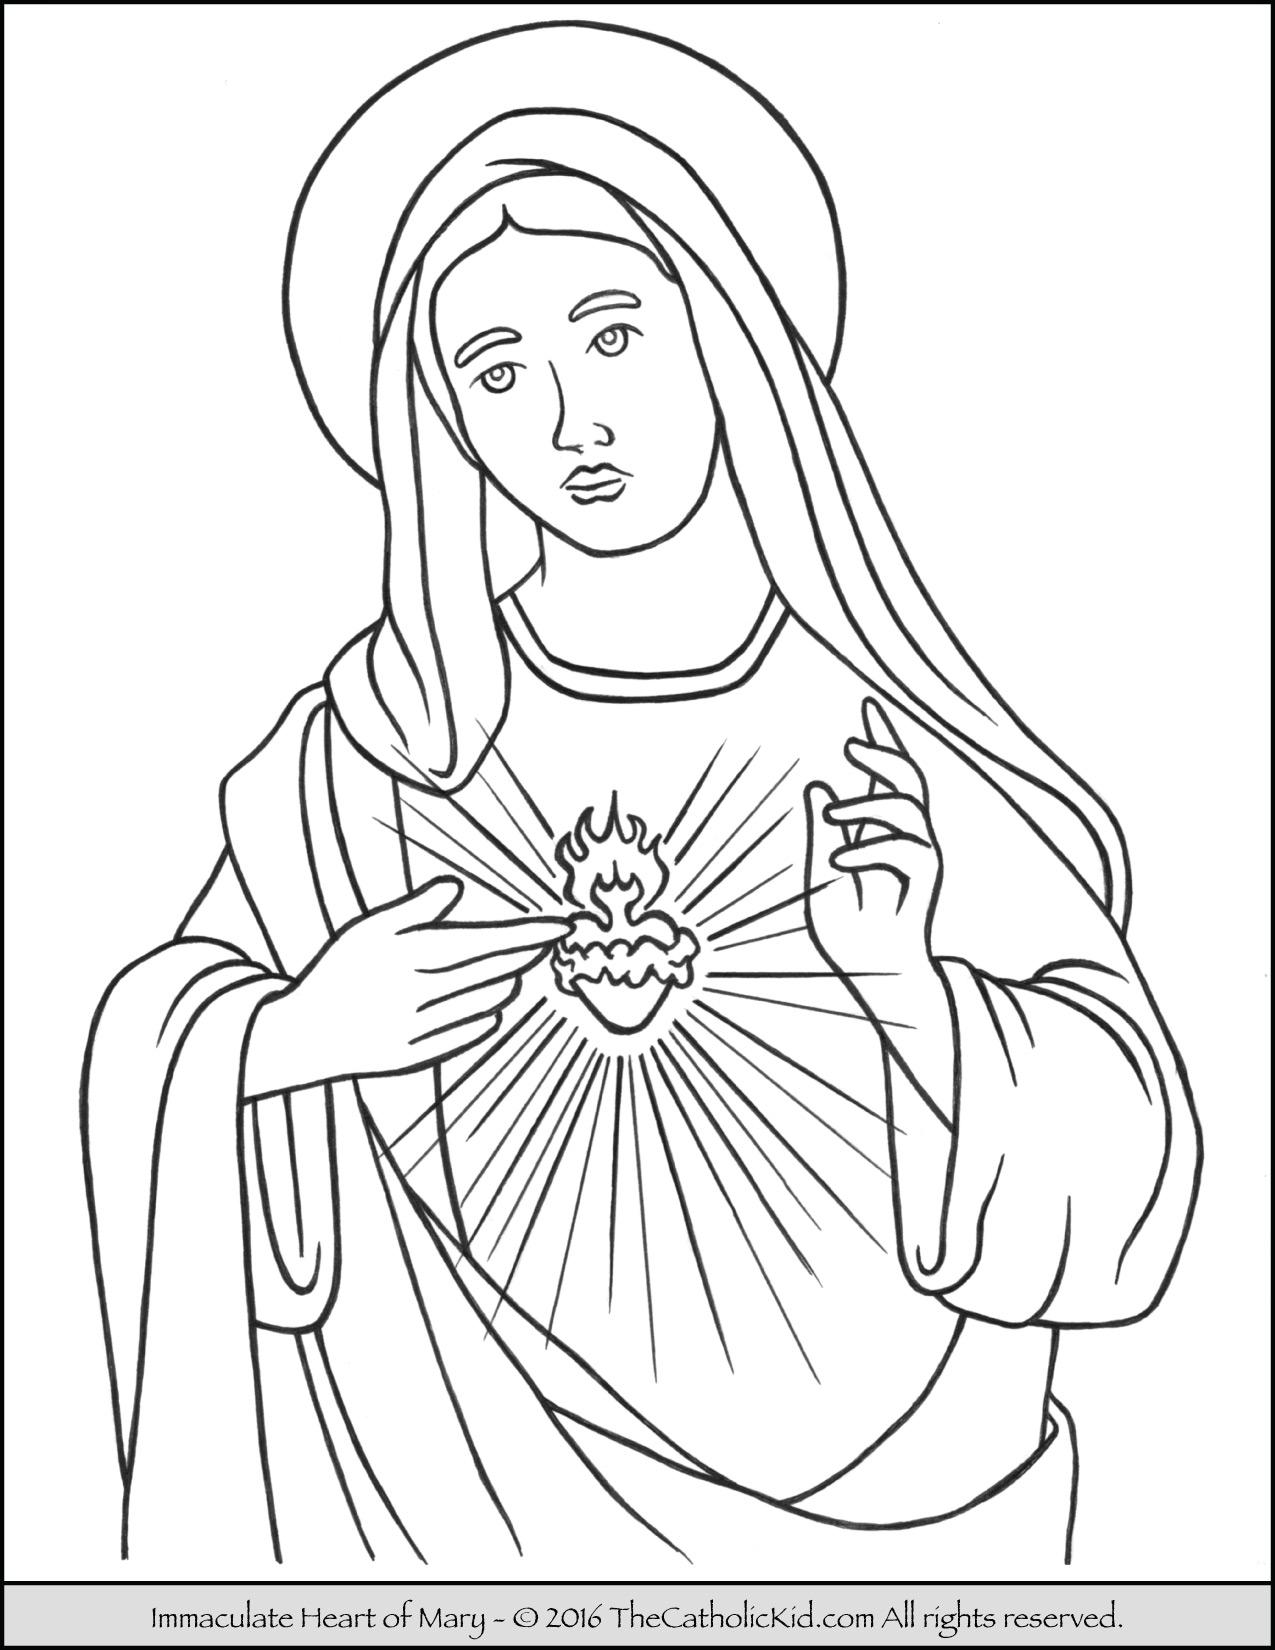 mary coloring pages saint mary praying coloring page thecatholickidcom coloring mary pages